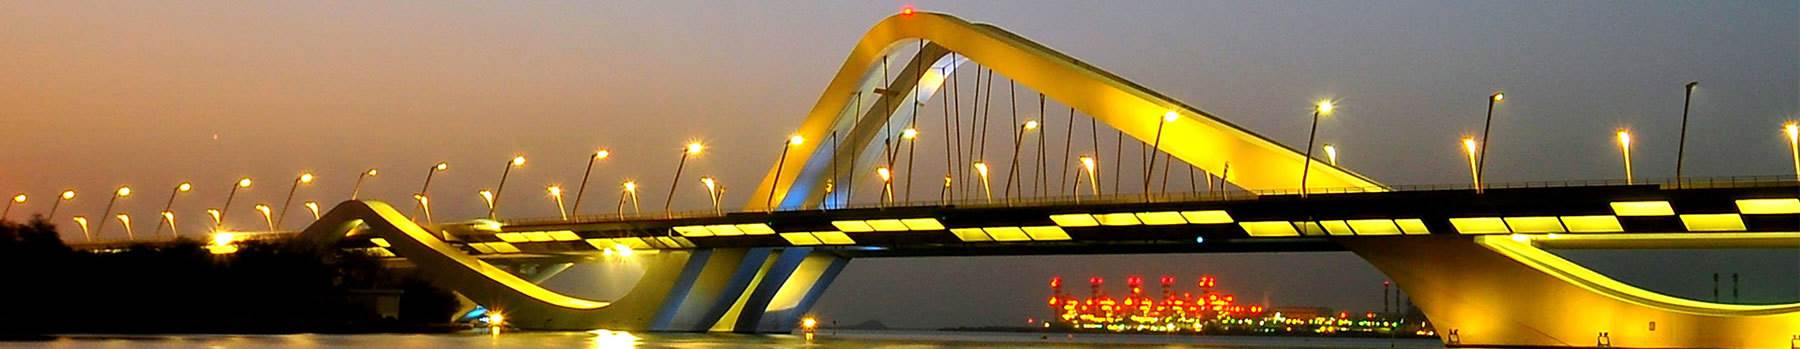 Hero-BrIM-Promotional-Image_iStock-Sheikh-Zayed-Bridge-Abu-Dhabi-UAE_EN